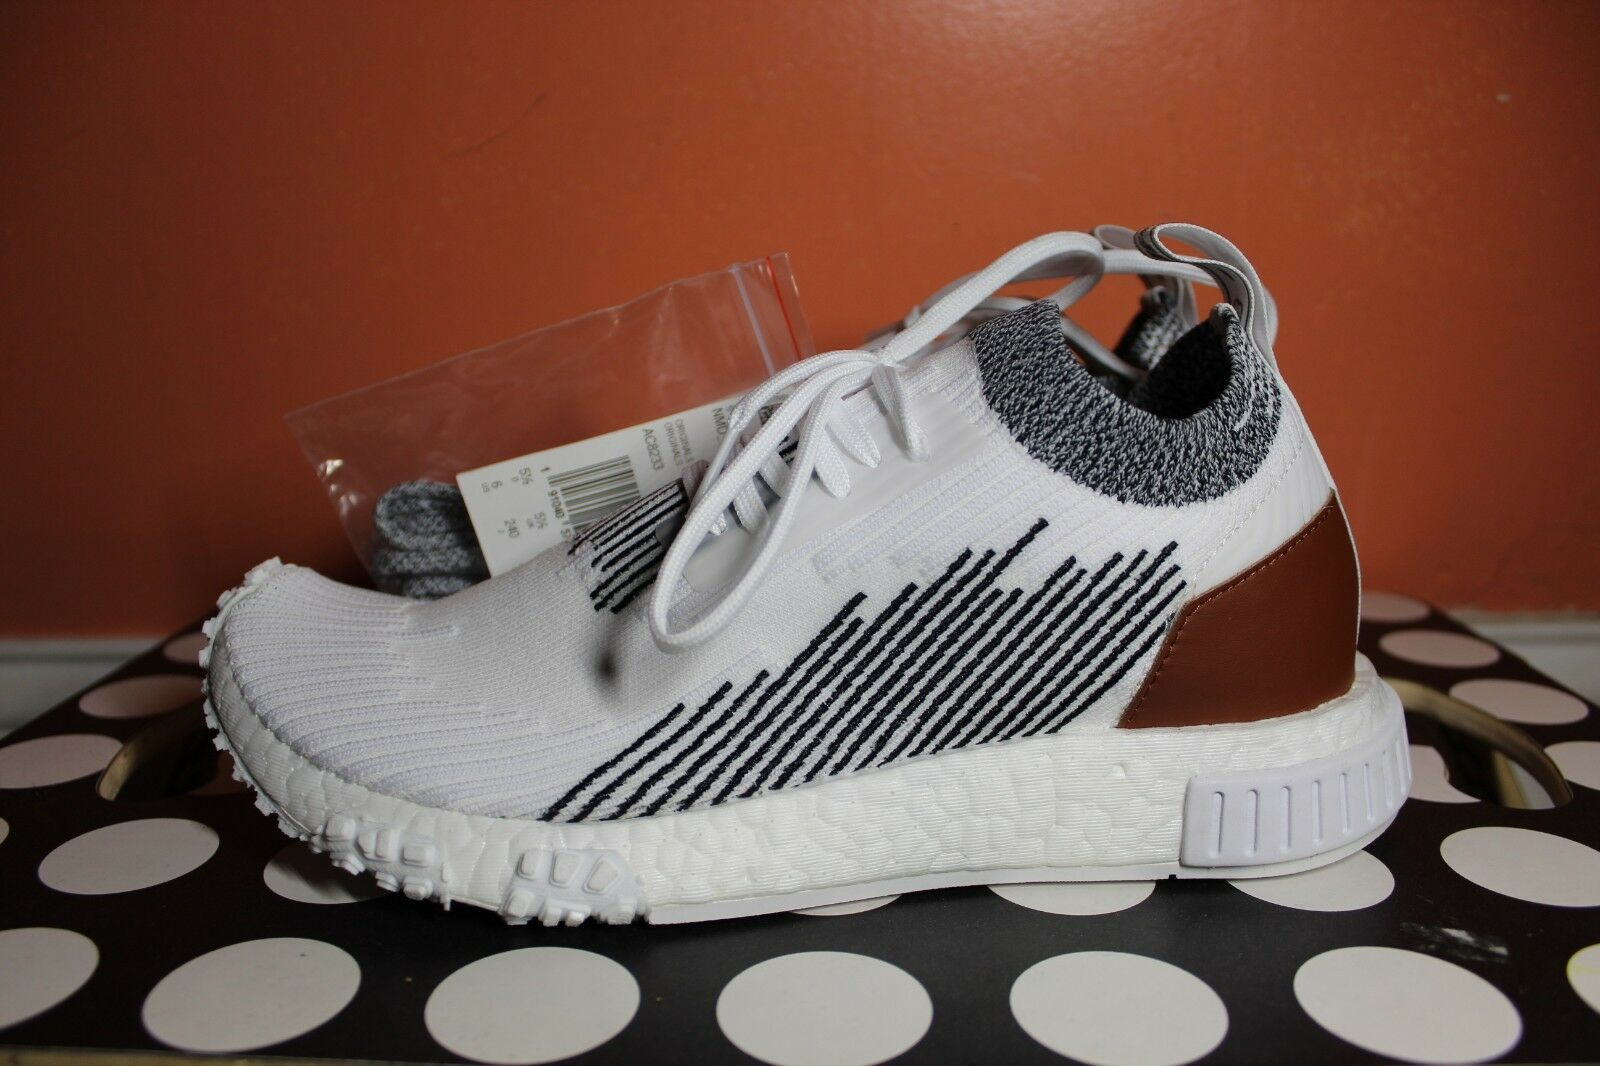 separation shoes 68d12 1b76a adidas NMD Racer Whitaker Car Club Monaco White Running Shoes Mens Size 6  AC8233 for sale online   eBay